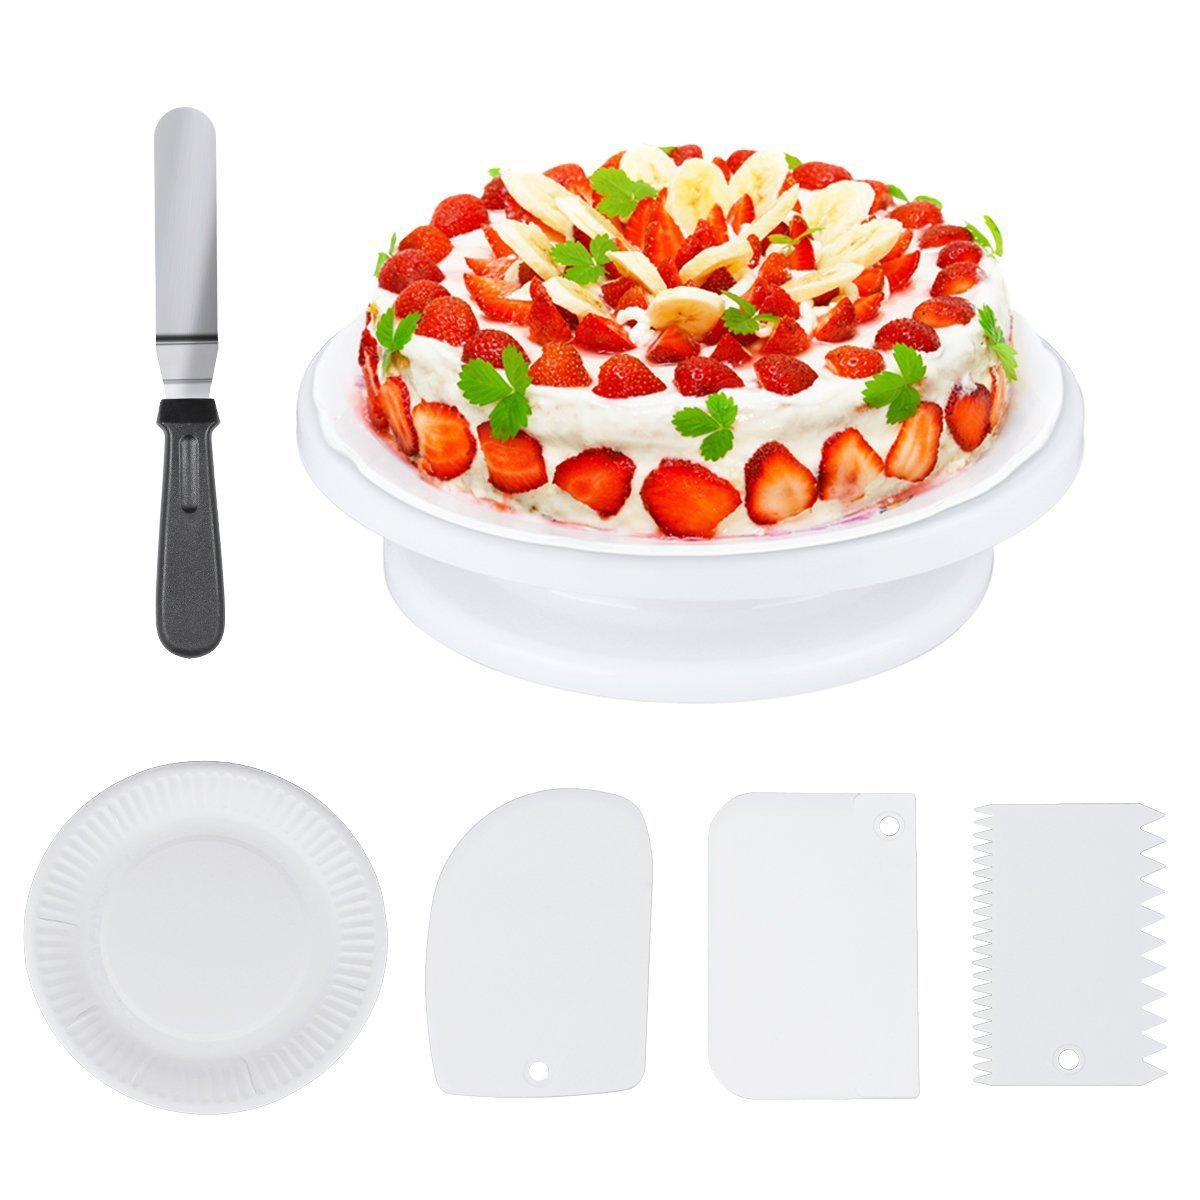 Cake Stand, Aiduy Cake Decorating Supplies Kit Includes 11 Inch Revolving Rotating Cake Turntable, 1 Angled Icing Spatula, 3 Icing Smoother Decorating Comb and 20 Cake Plates for Birthday Party